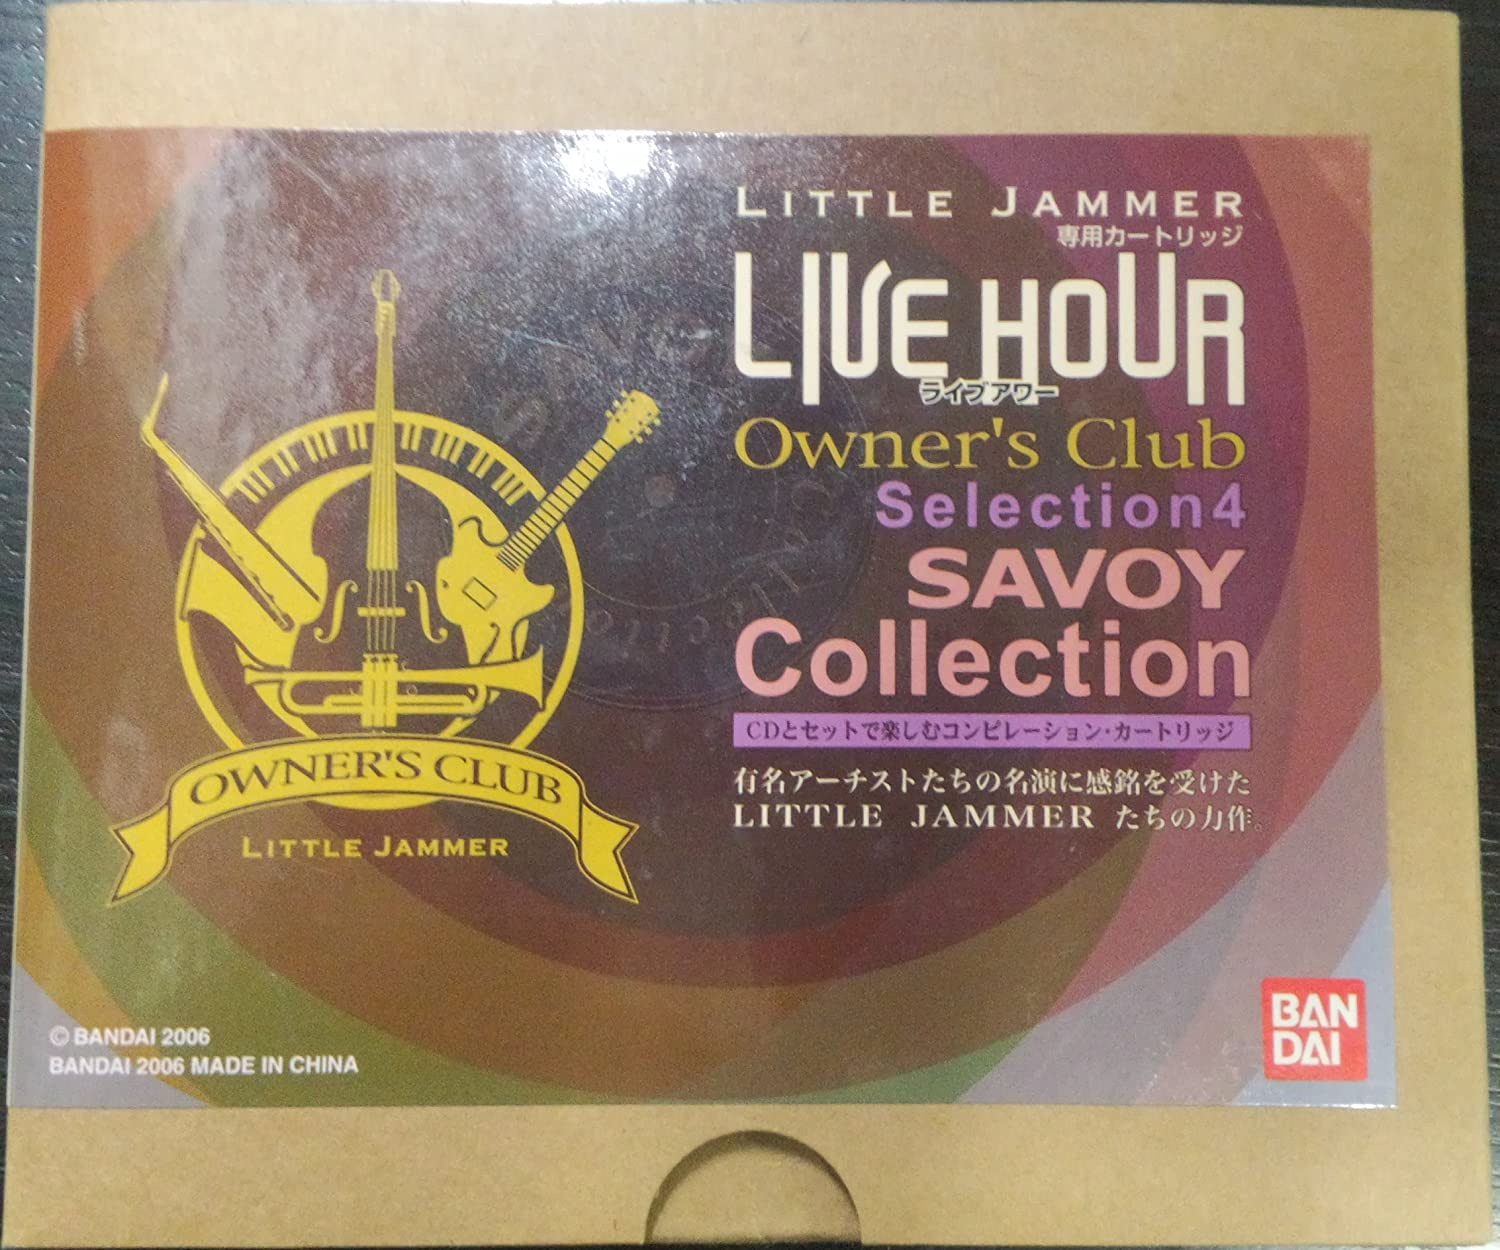 LITTLE JAMMER専用カートリッジ ライブアワー Owner's Club Selection4 SAVOY Collection B00K5MAWLK